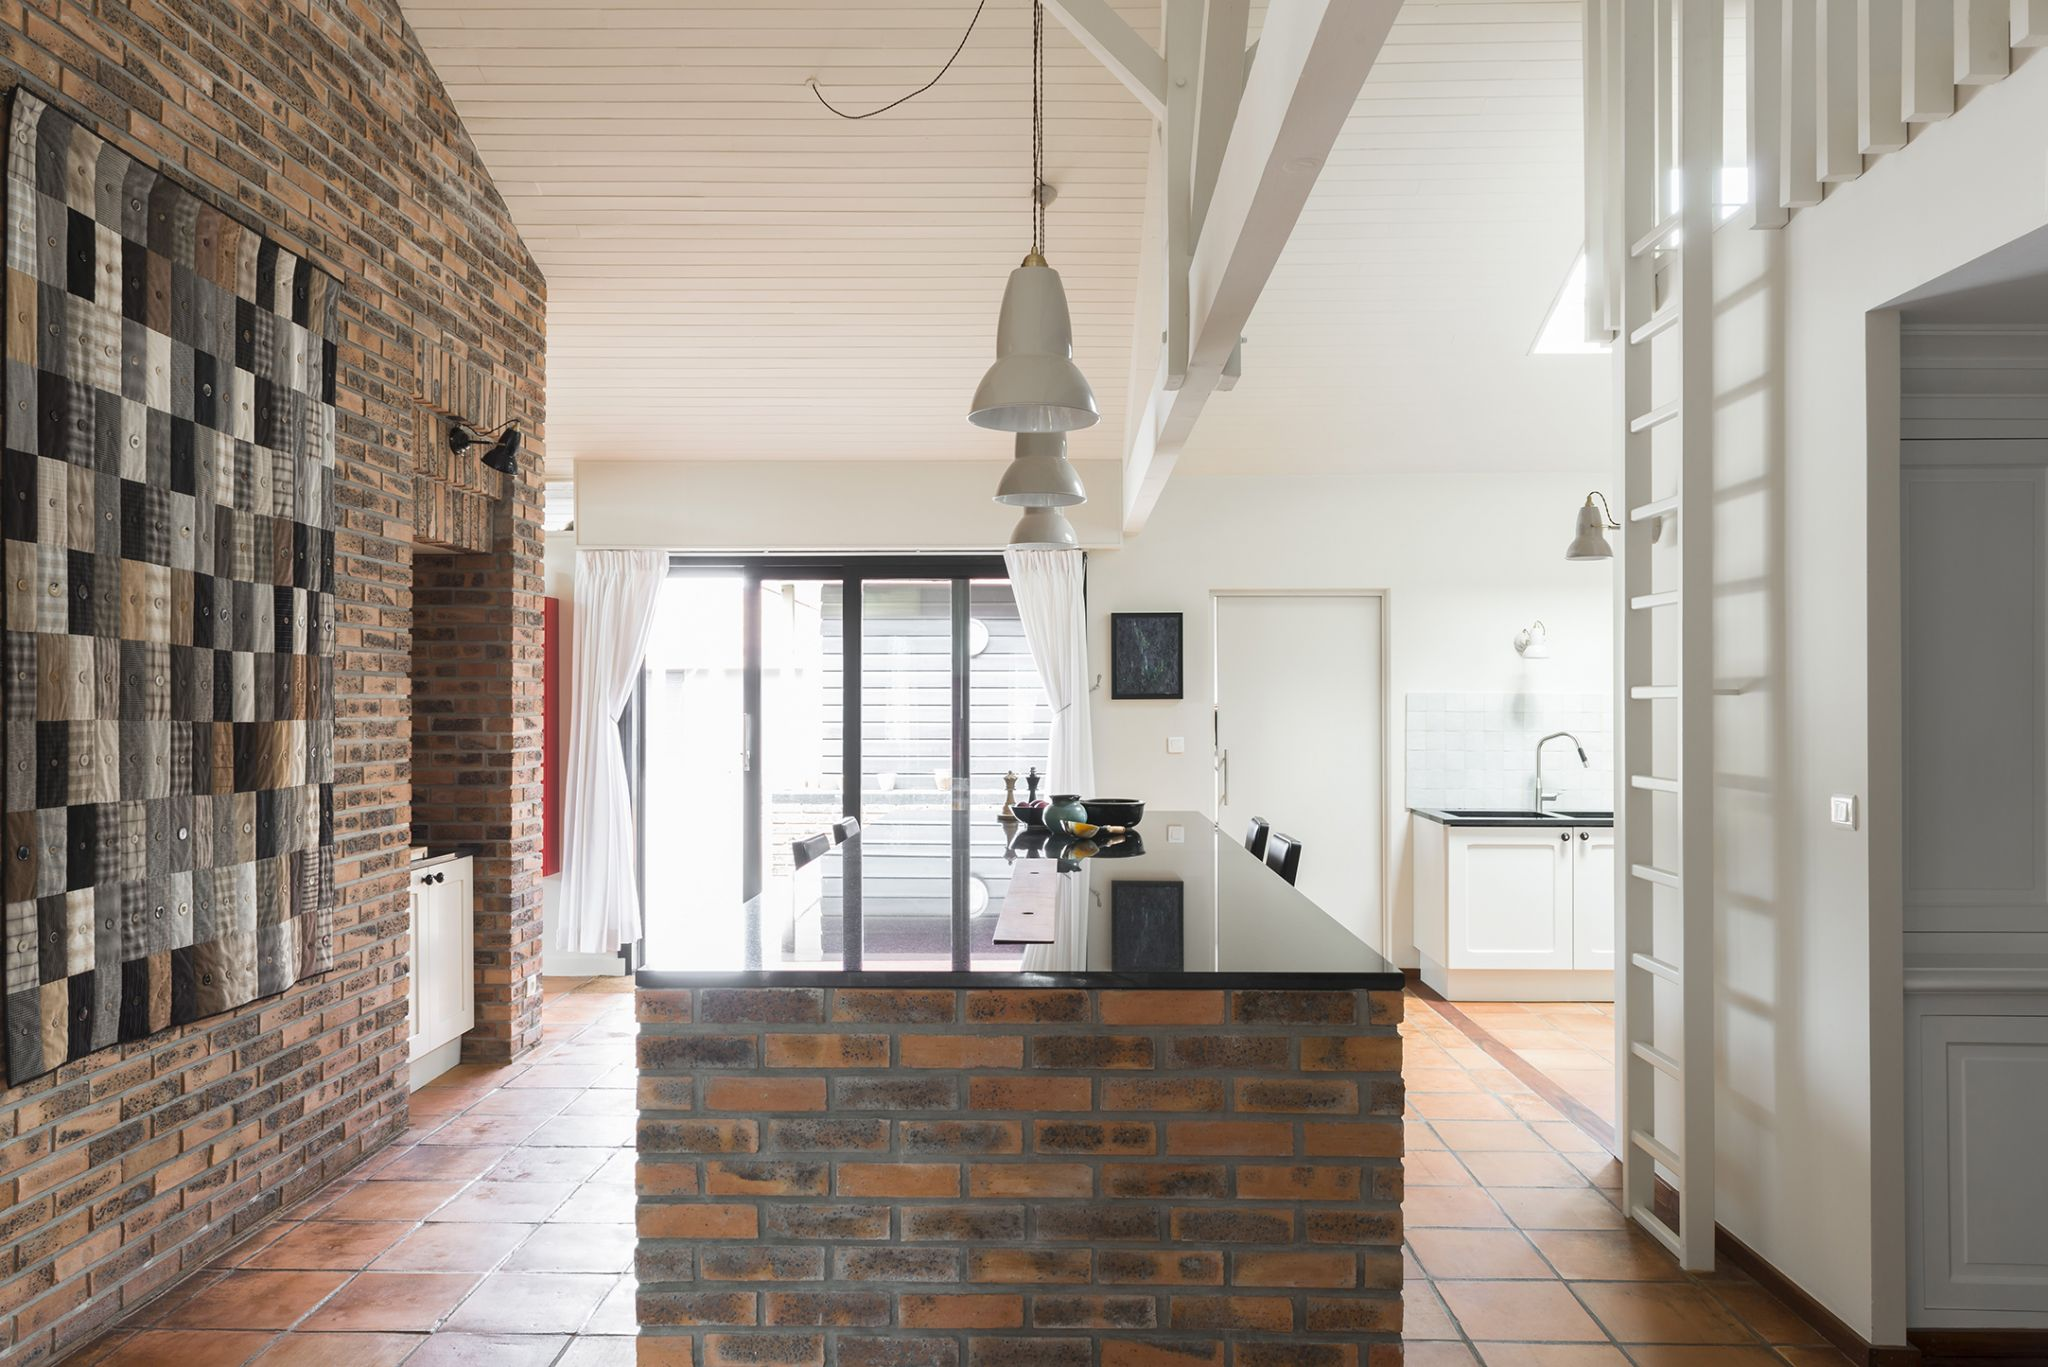 Lala Architectes_Renovation_Landes_Cuisine_Briquettes_Suspension Original BTC_Plan de travail Marbre du Zimbabwe